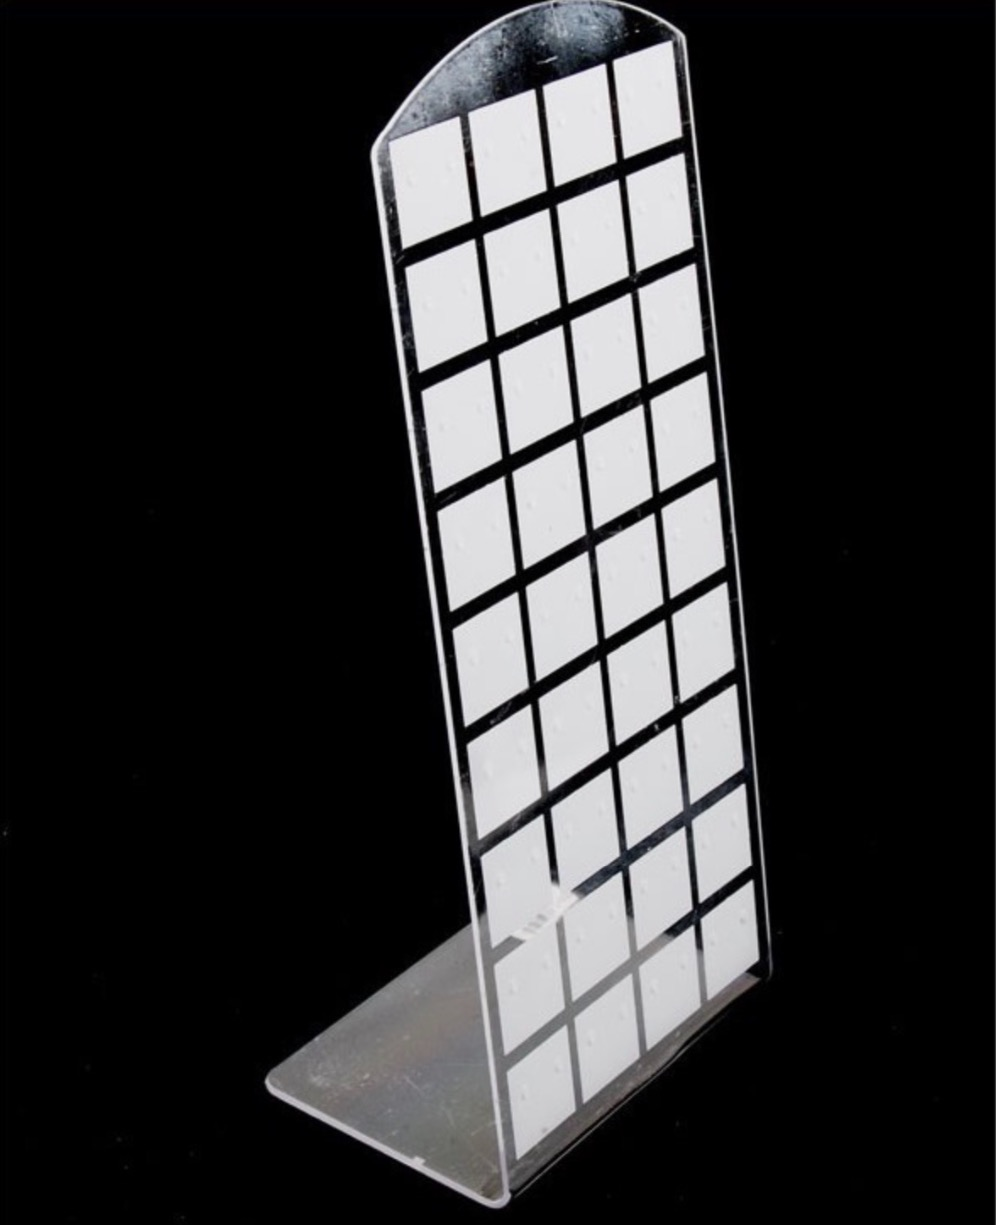 10Pieces/Lot H:18X9CM. L Shaped Earring Acrylic Stand Display Board Display Rack(Can Put 36pairs Earring)